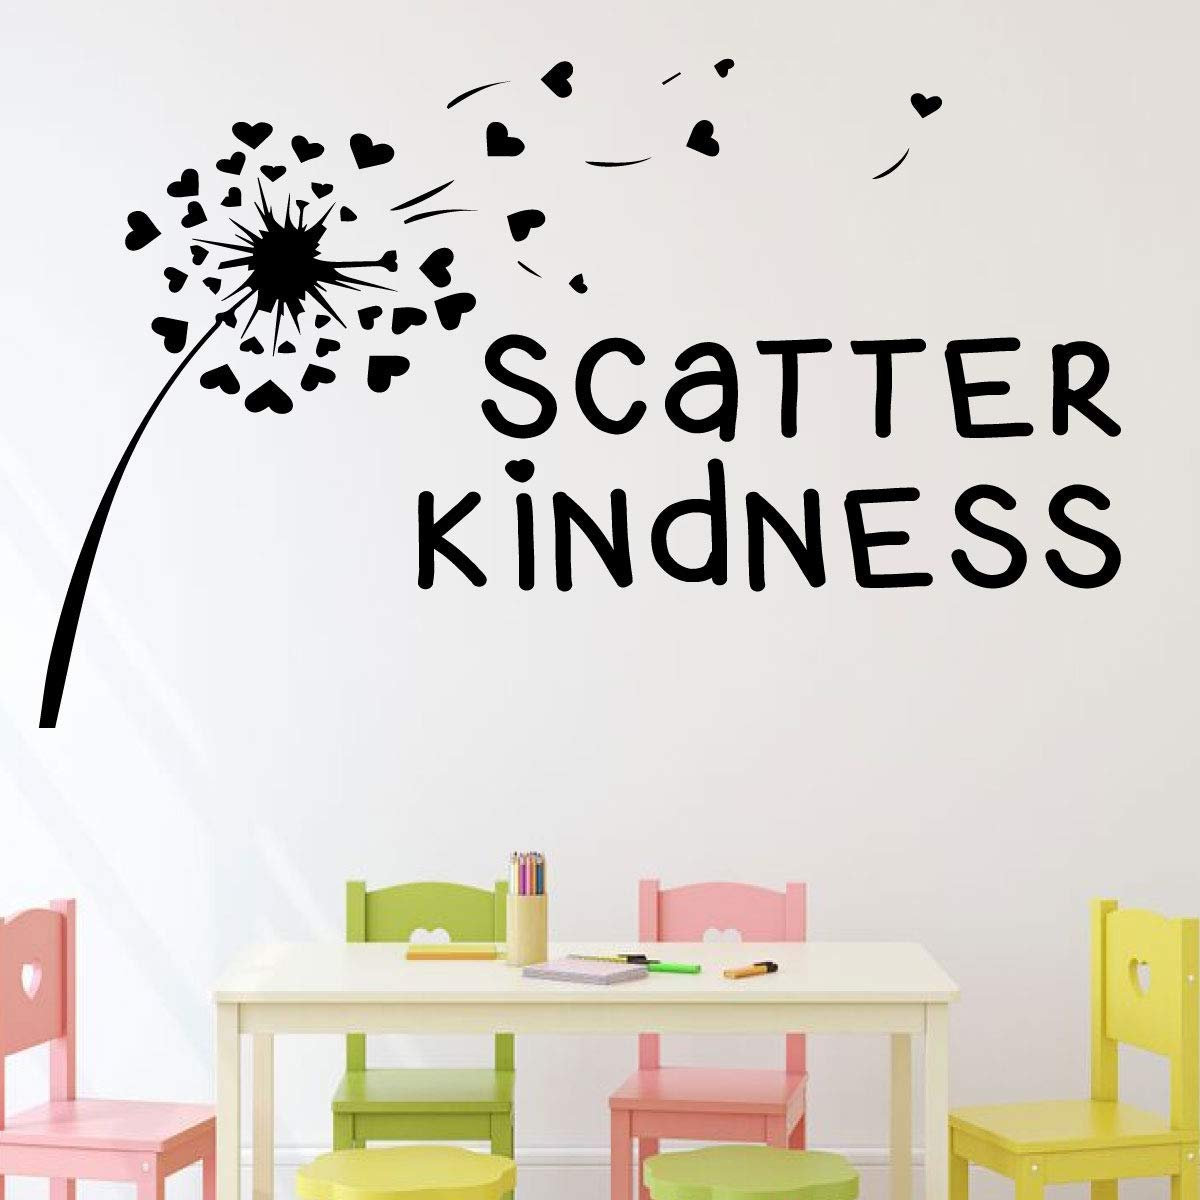 Wall decal for kitchen entryway or mudroom scatter kindness vinyl lettering with hart shaped dandelion silhouette home décor fun gift a variety of